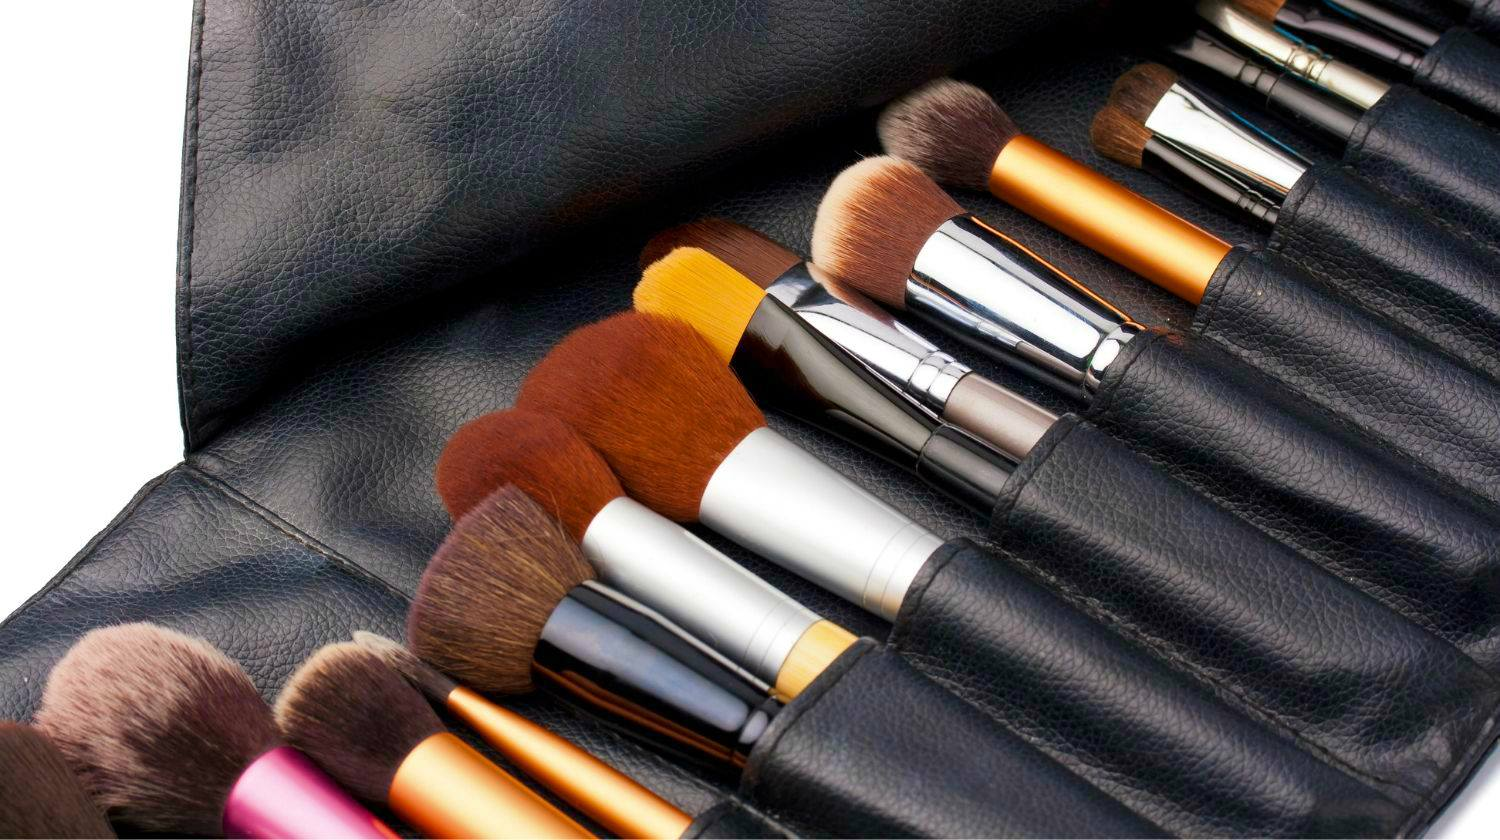 feature | 1Makeup Tips | 13 Essential Makeup Brushes